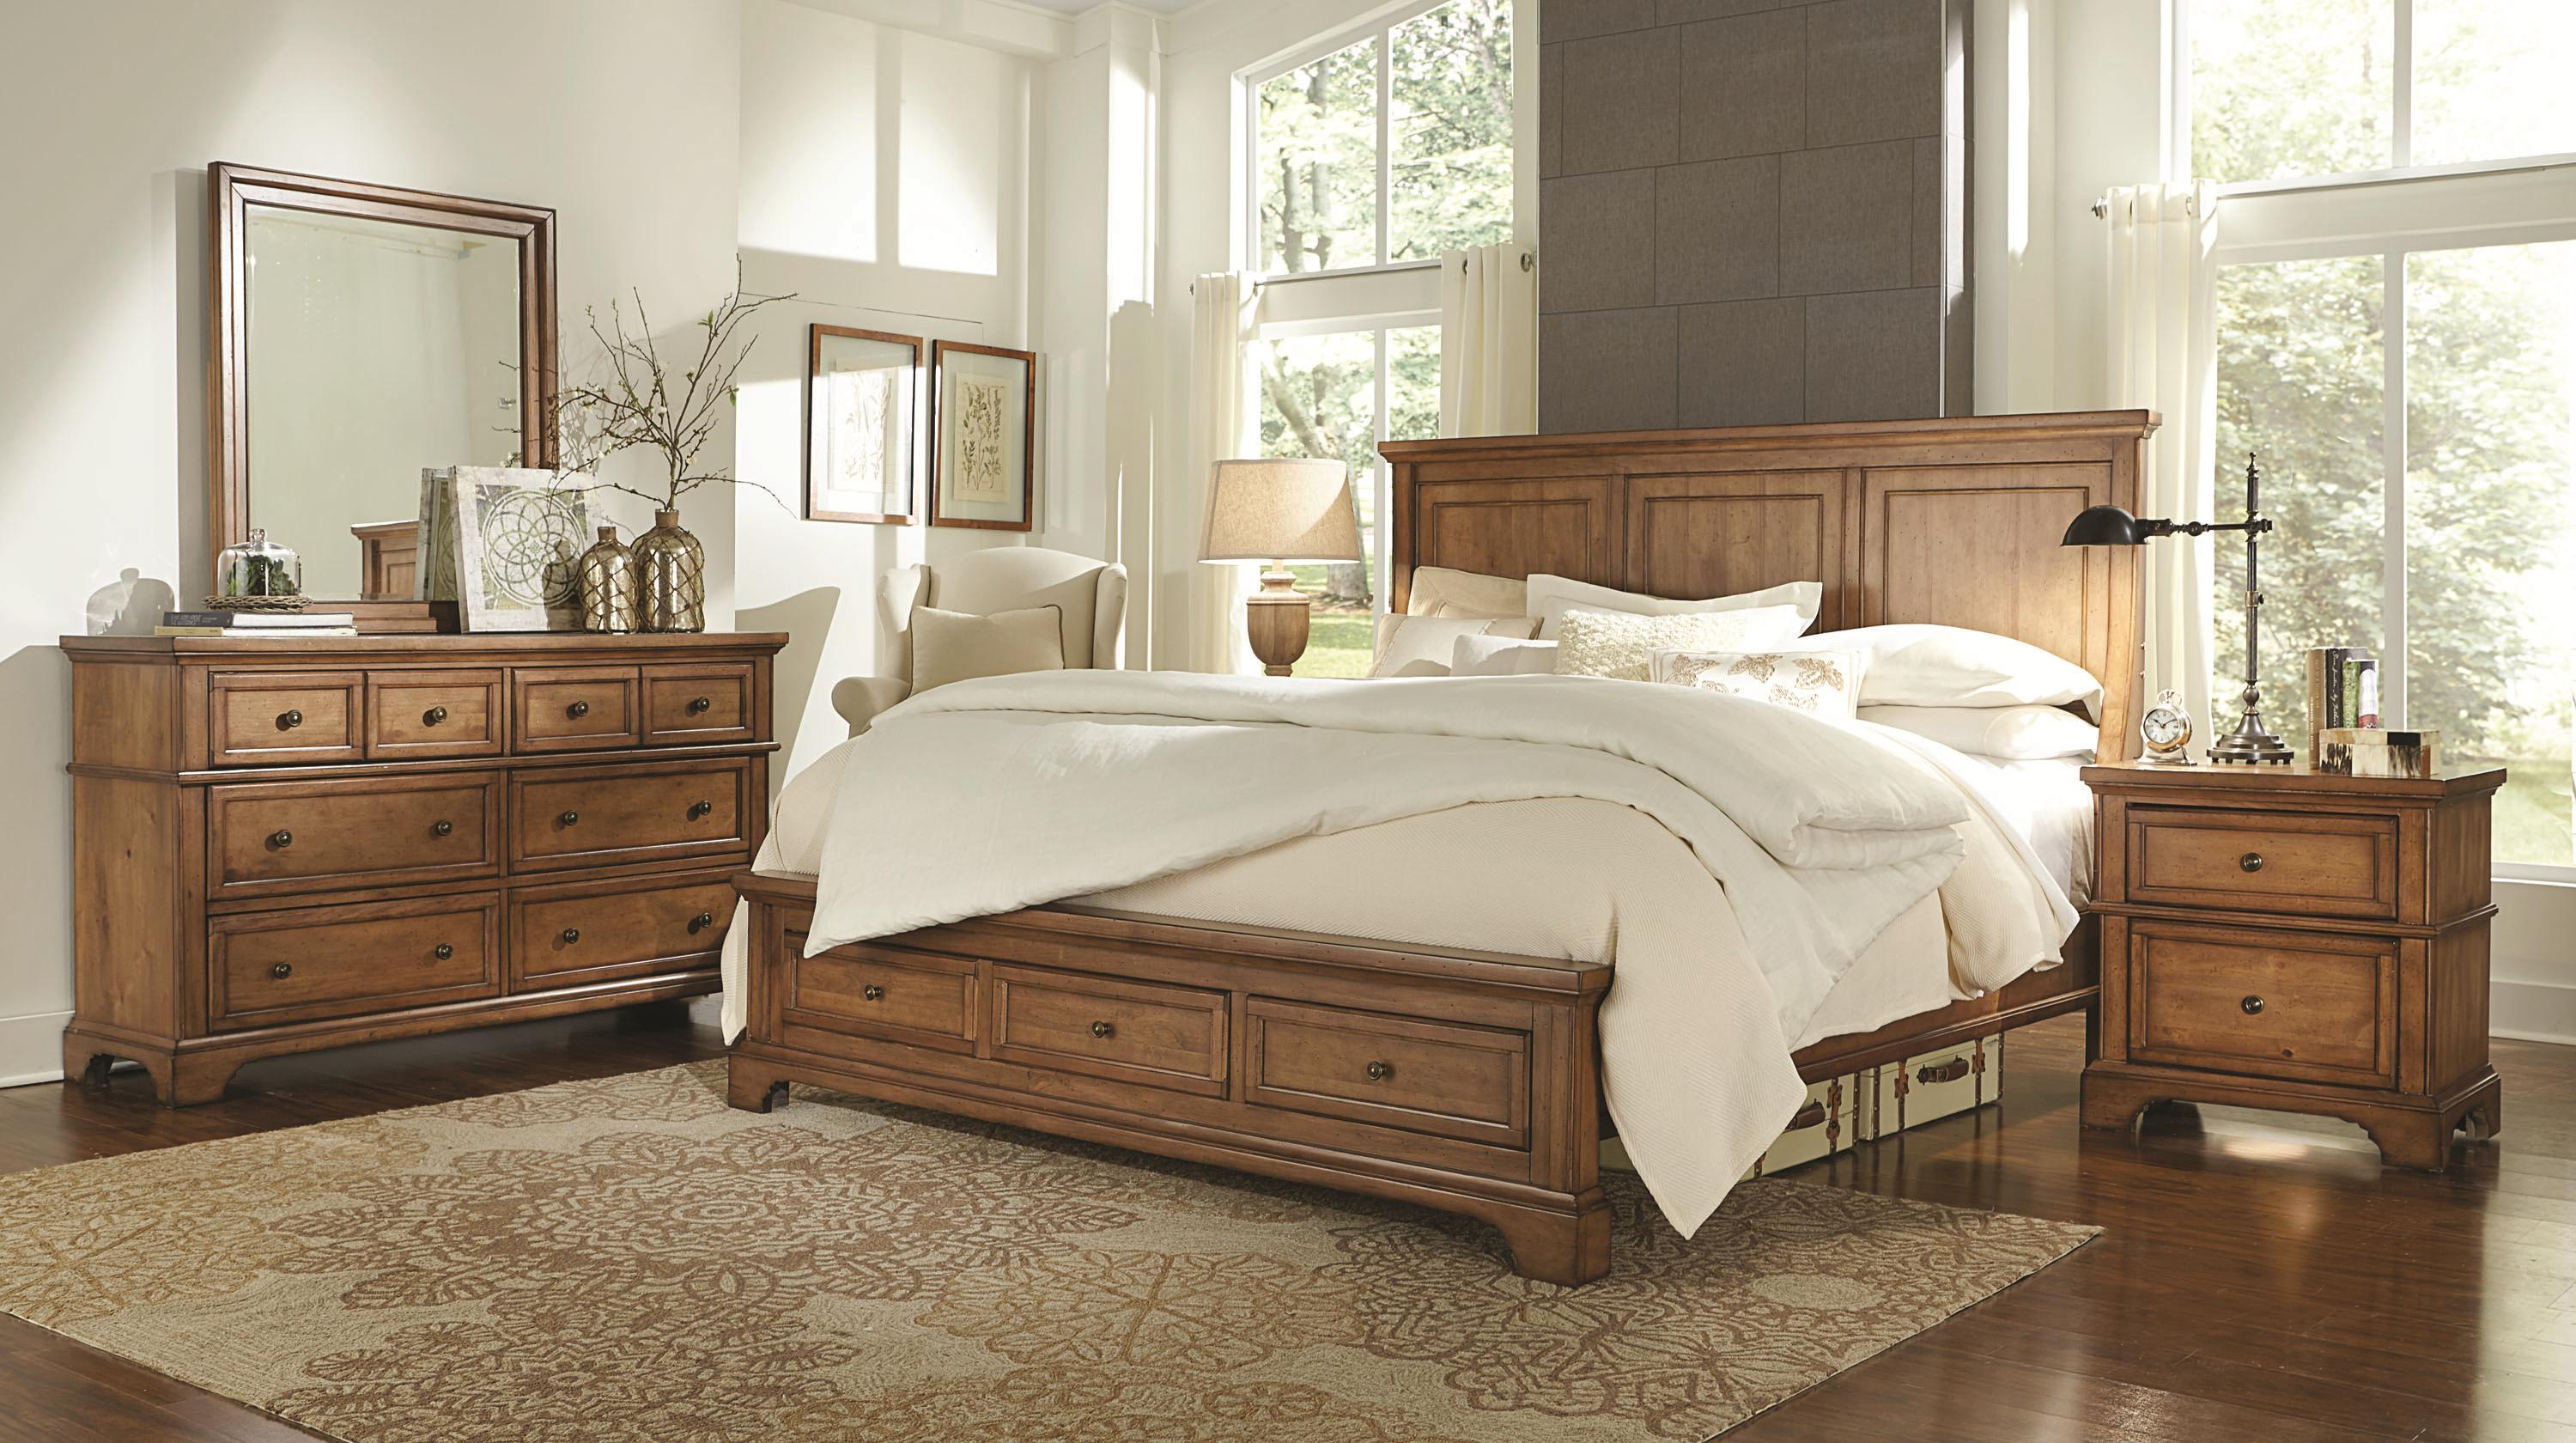 Alder Creek Queen Bedroom Group 2 by Hills of Aspen at Ruby Gordon Home